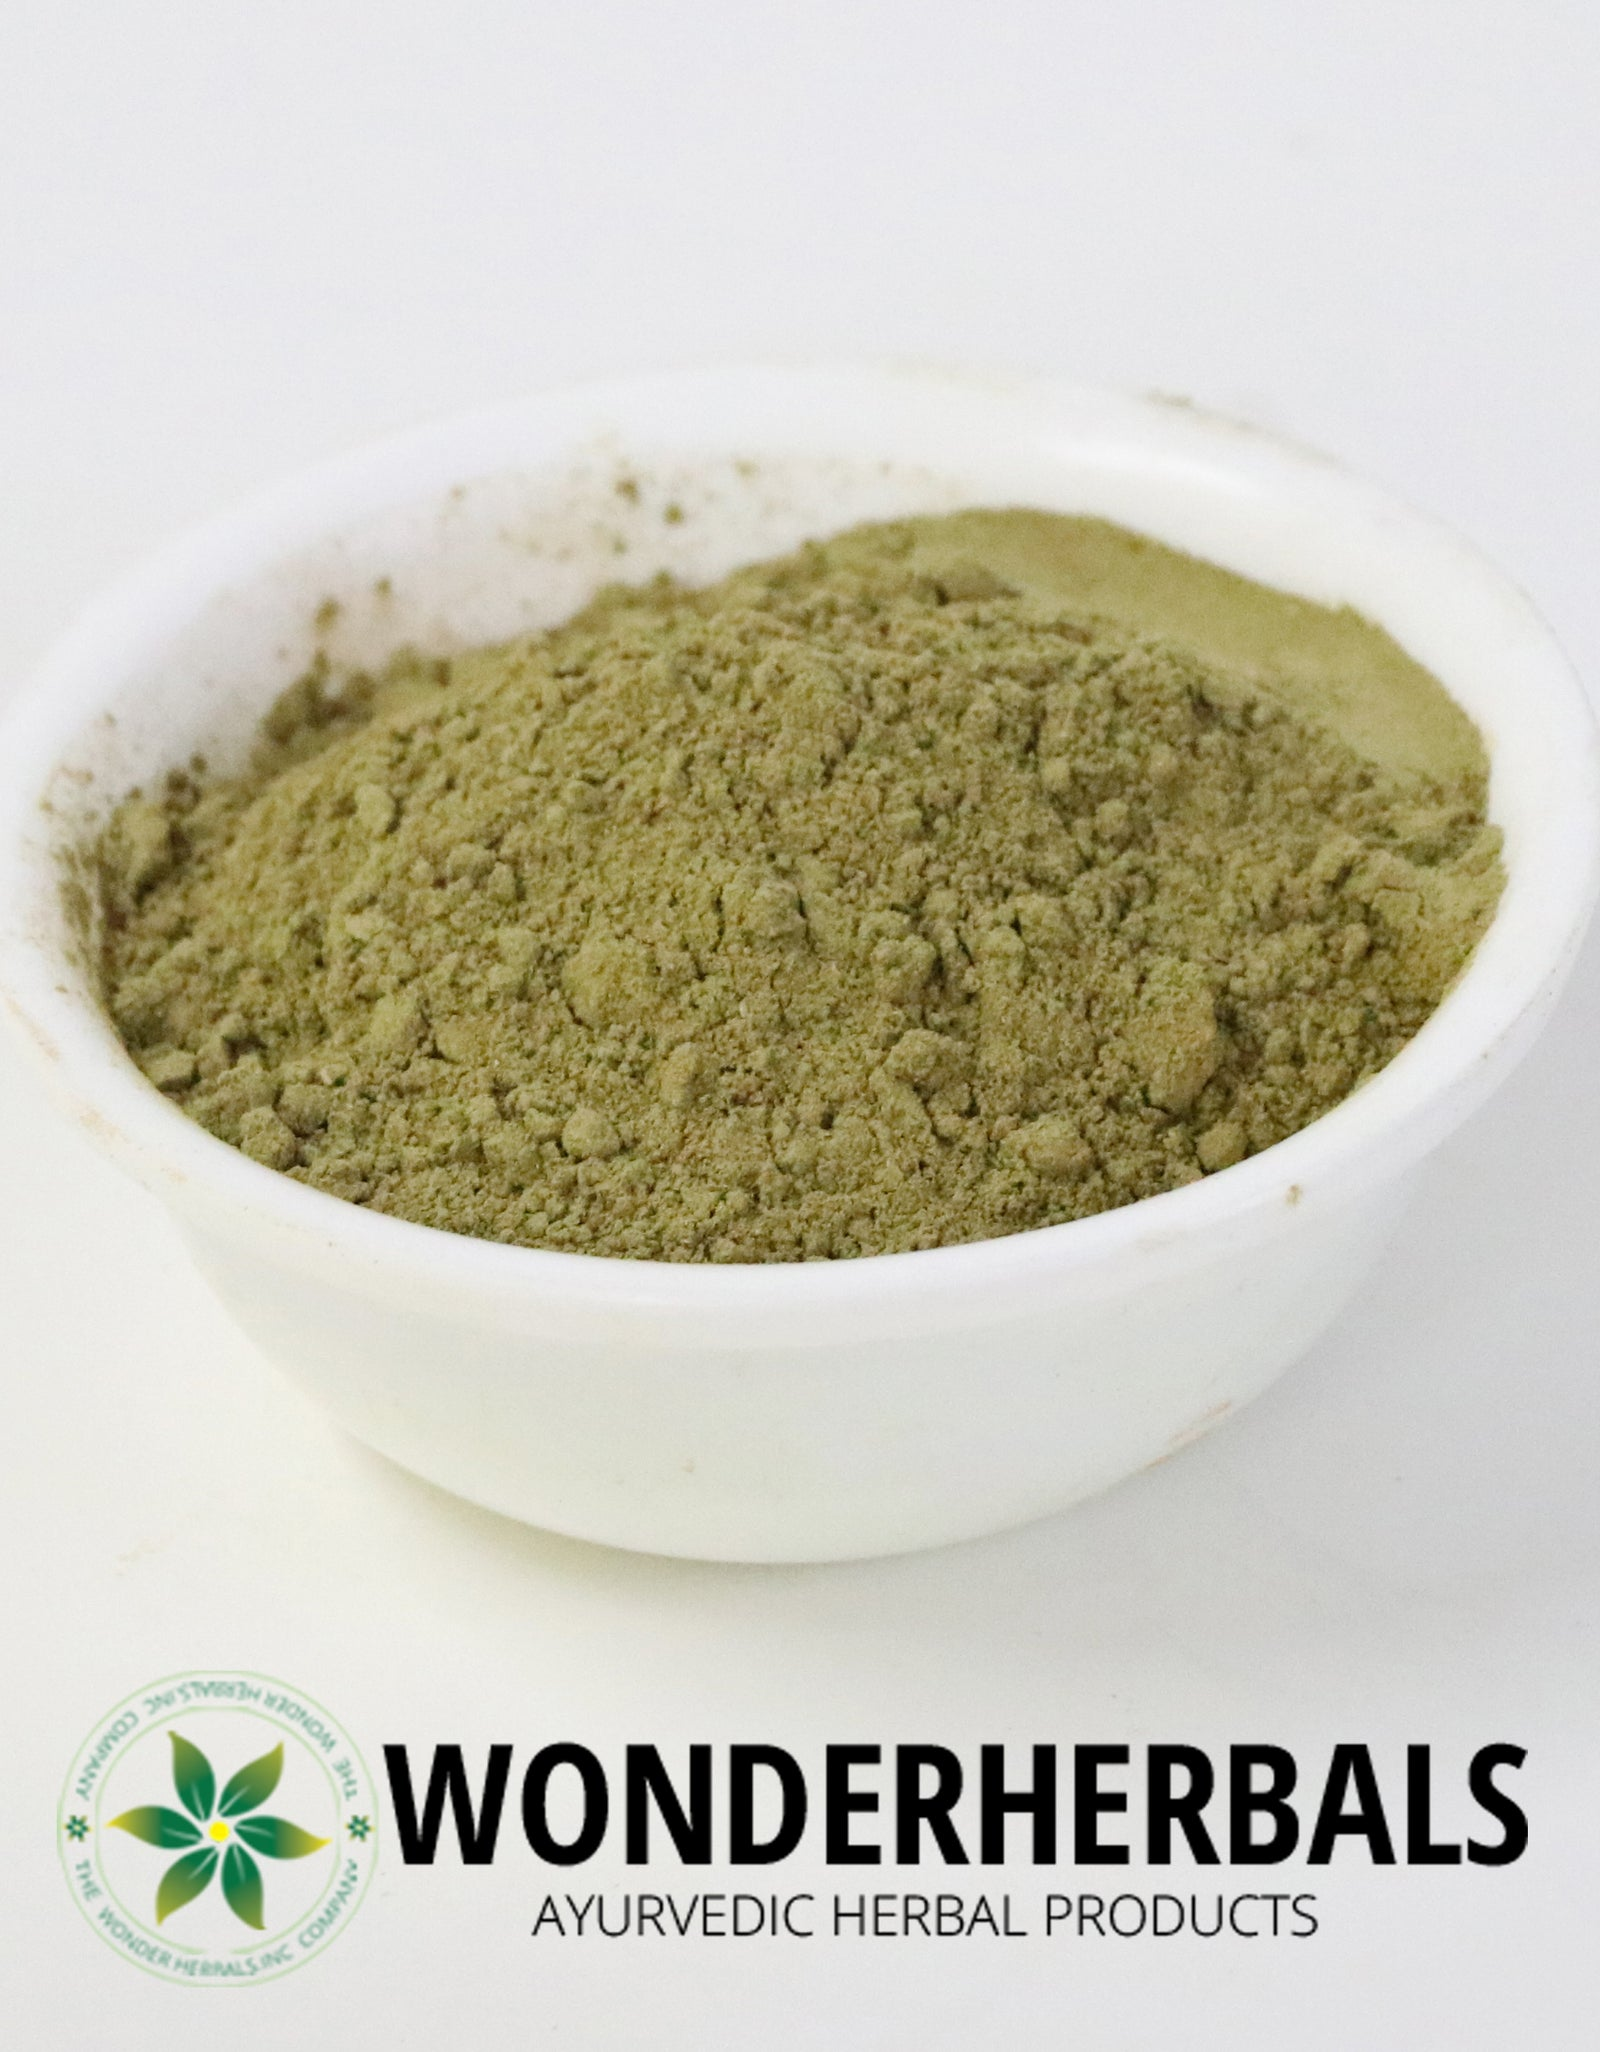 Maredu leaf choornam - Wonderherbals